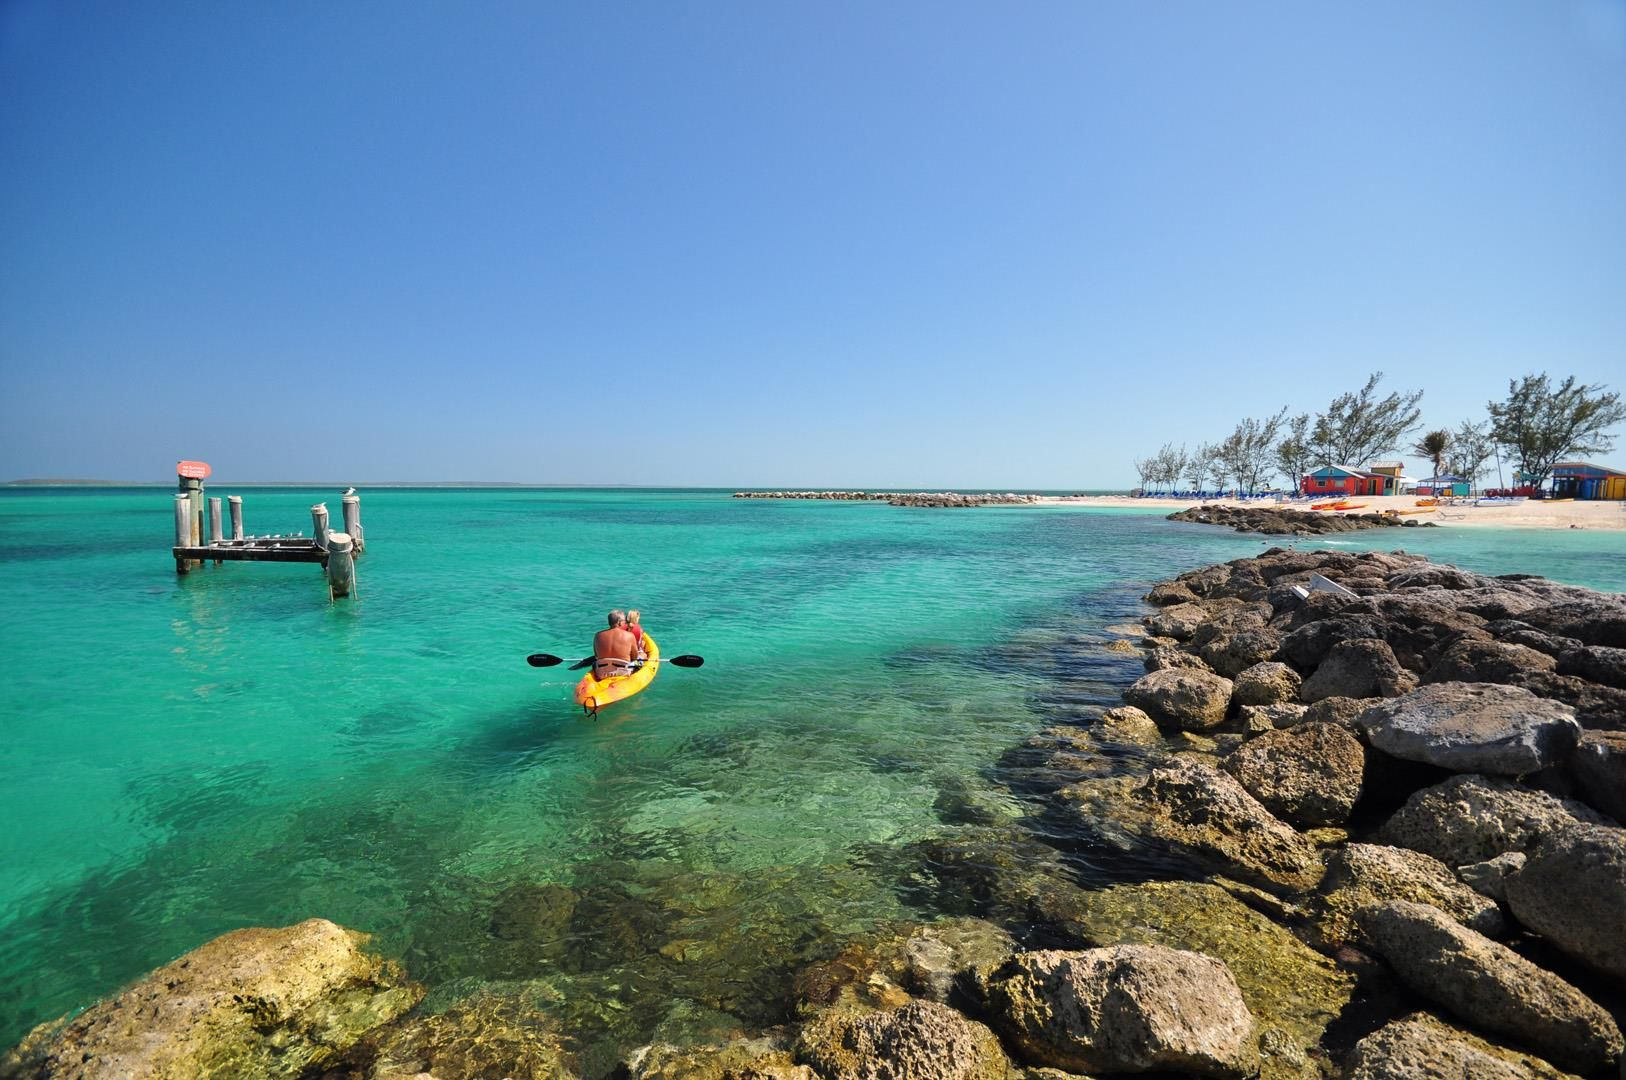 Kayaking in the Bahamas